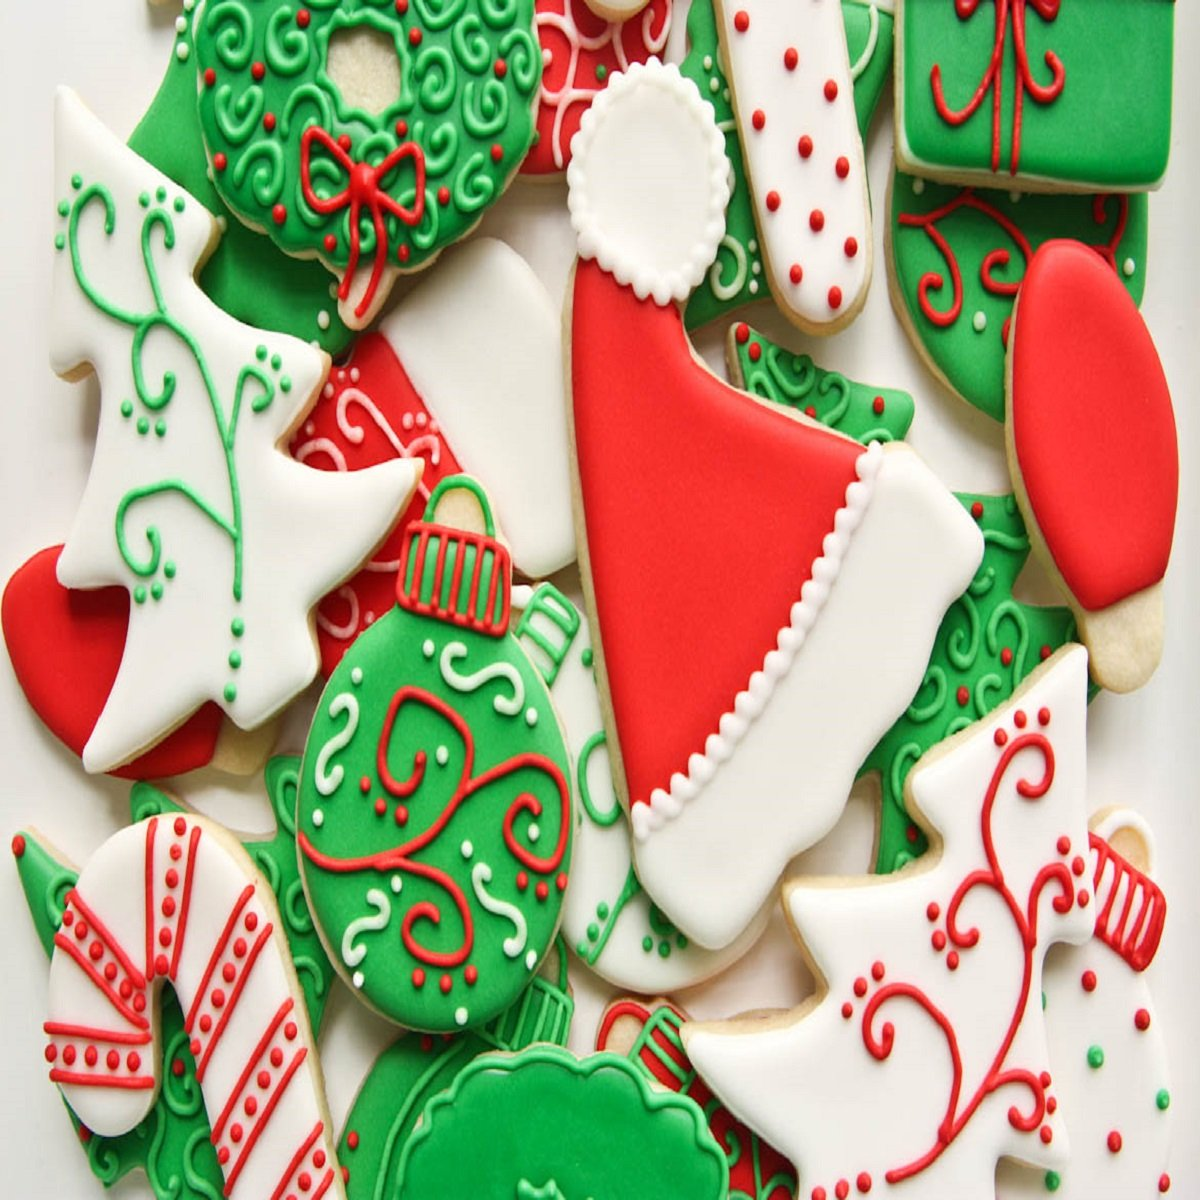 Christmas Cookies Fragrance Oil - 16 OZ/ 1 LB - for Candle & SOAP Making by VIRGINIA CANDLE SUPPLY - Free S&H in USA